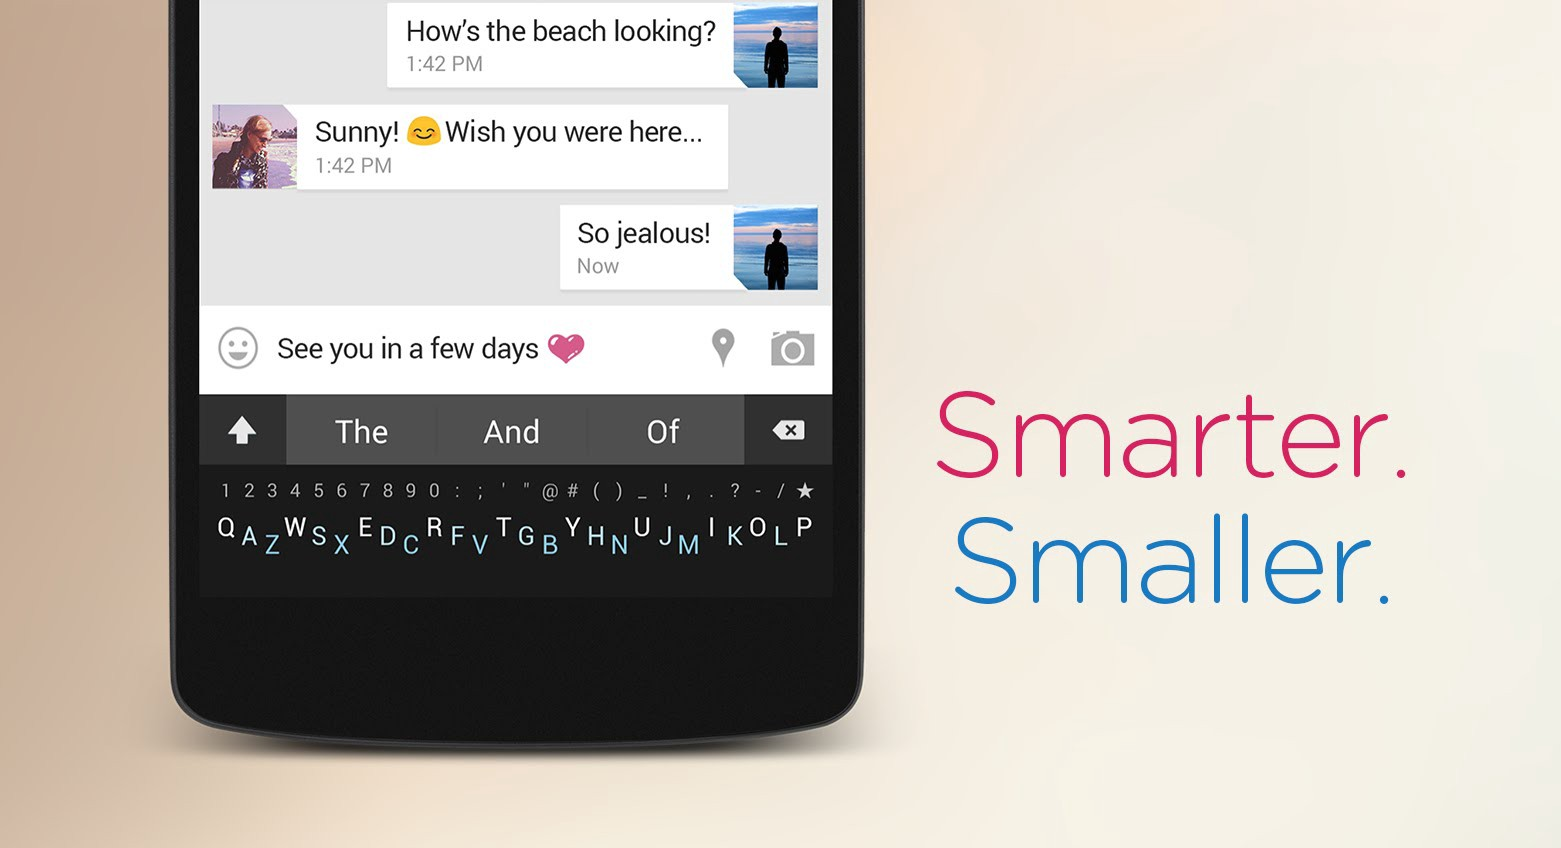 What are the best Keyboards with Emojis for Android Phones?